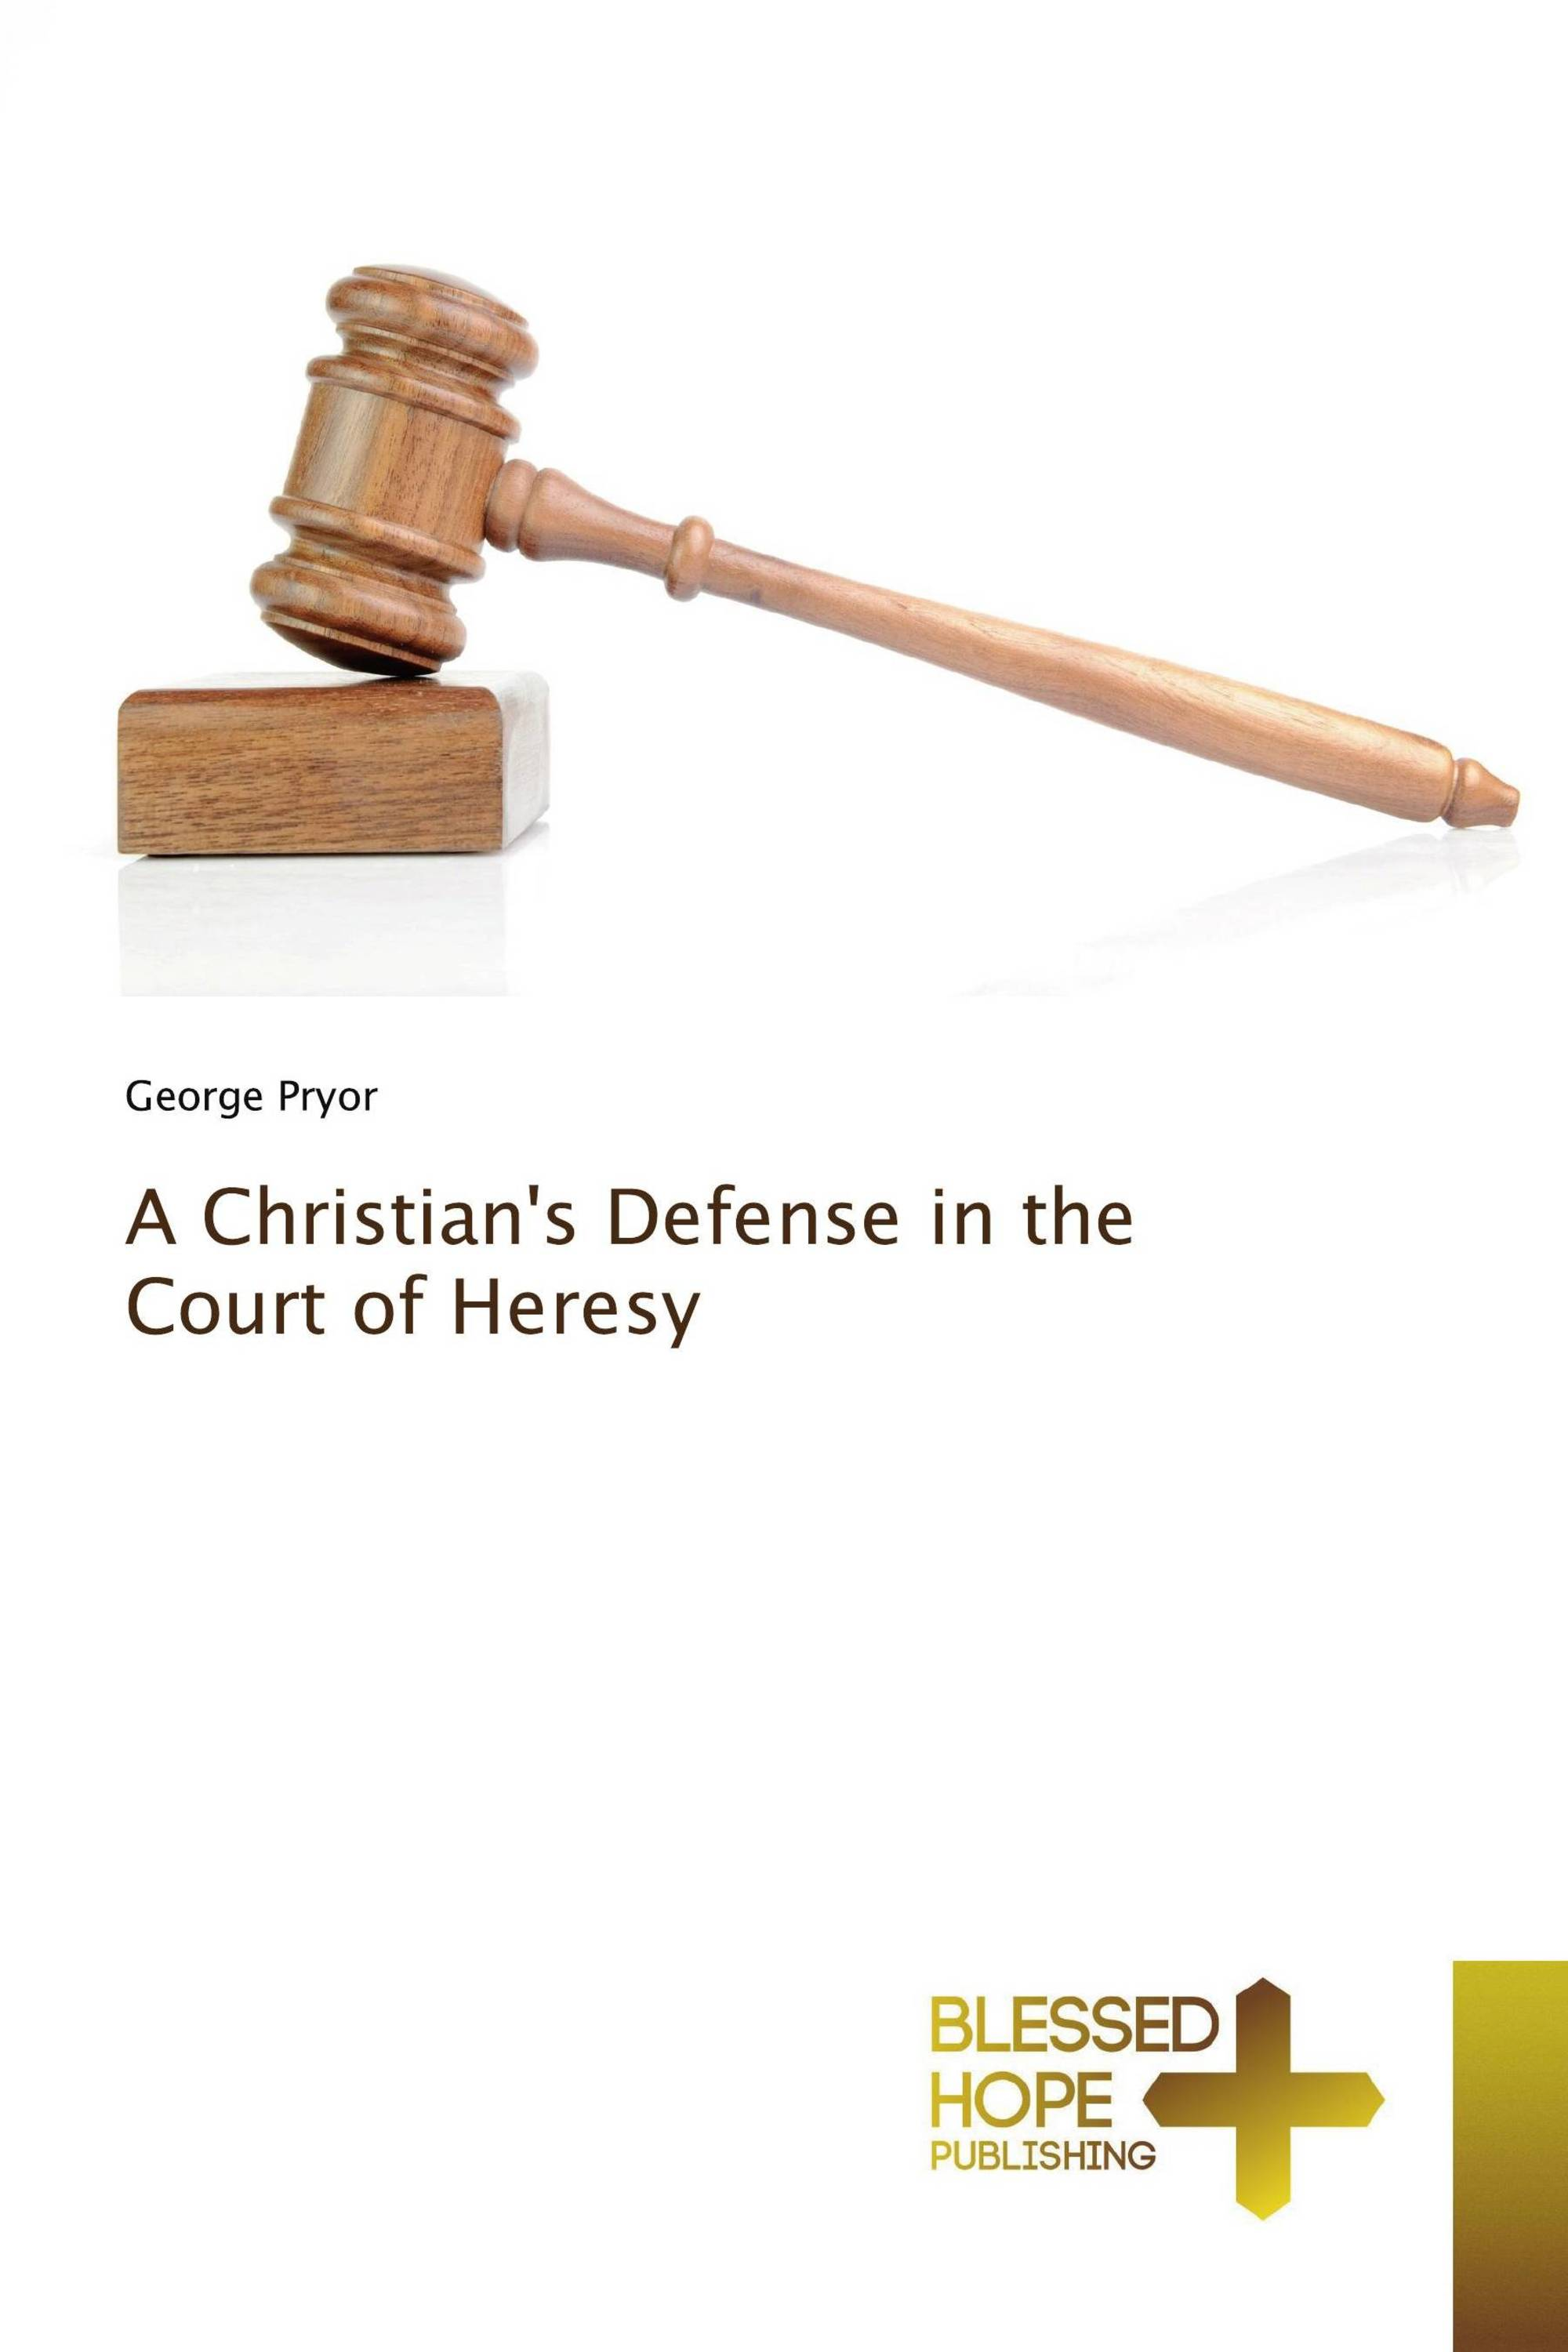 A Christian's Defense in the Court of Heresy